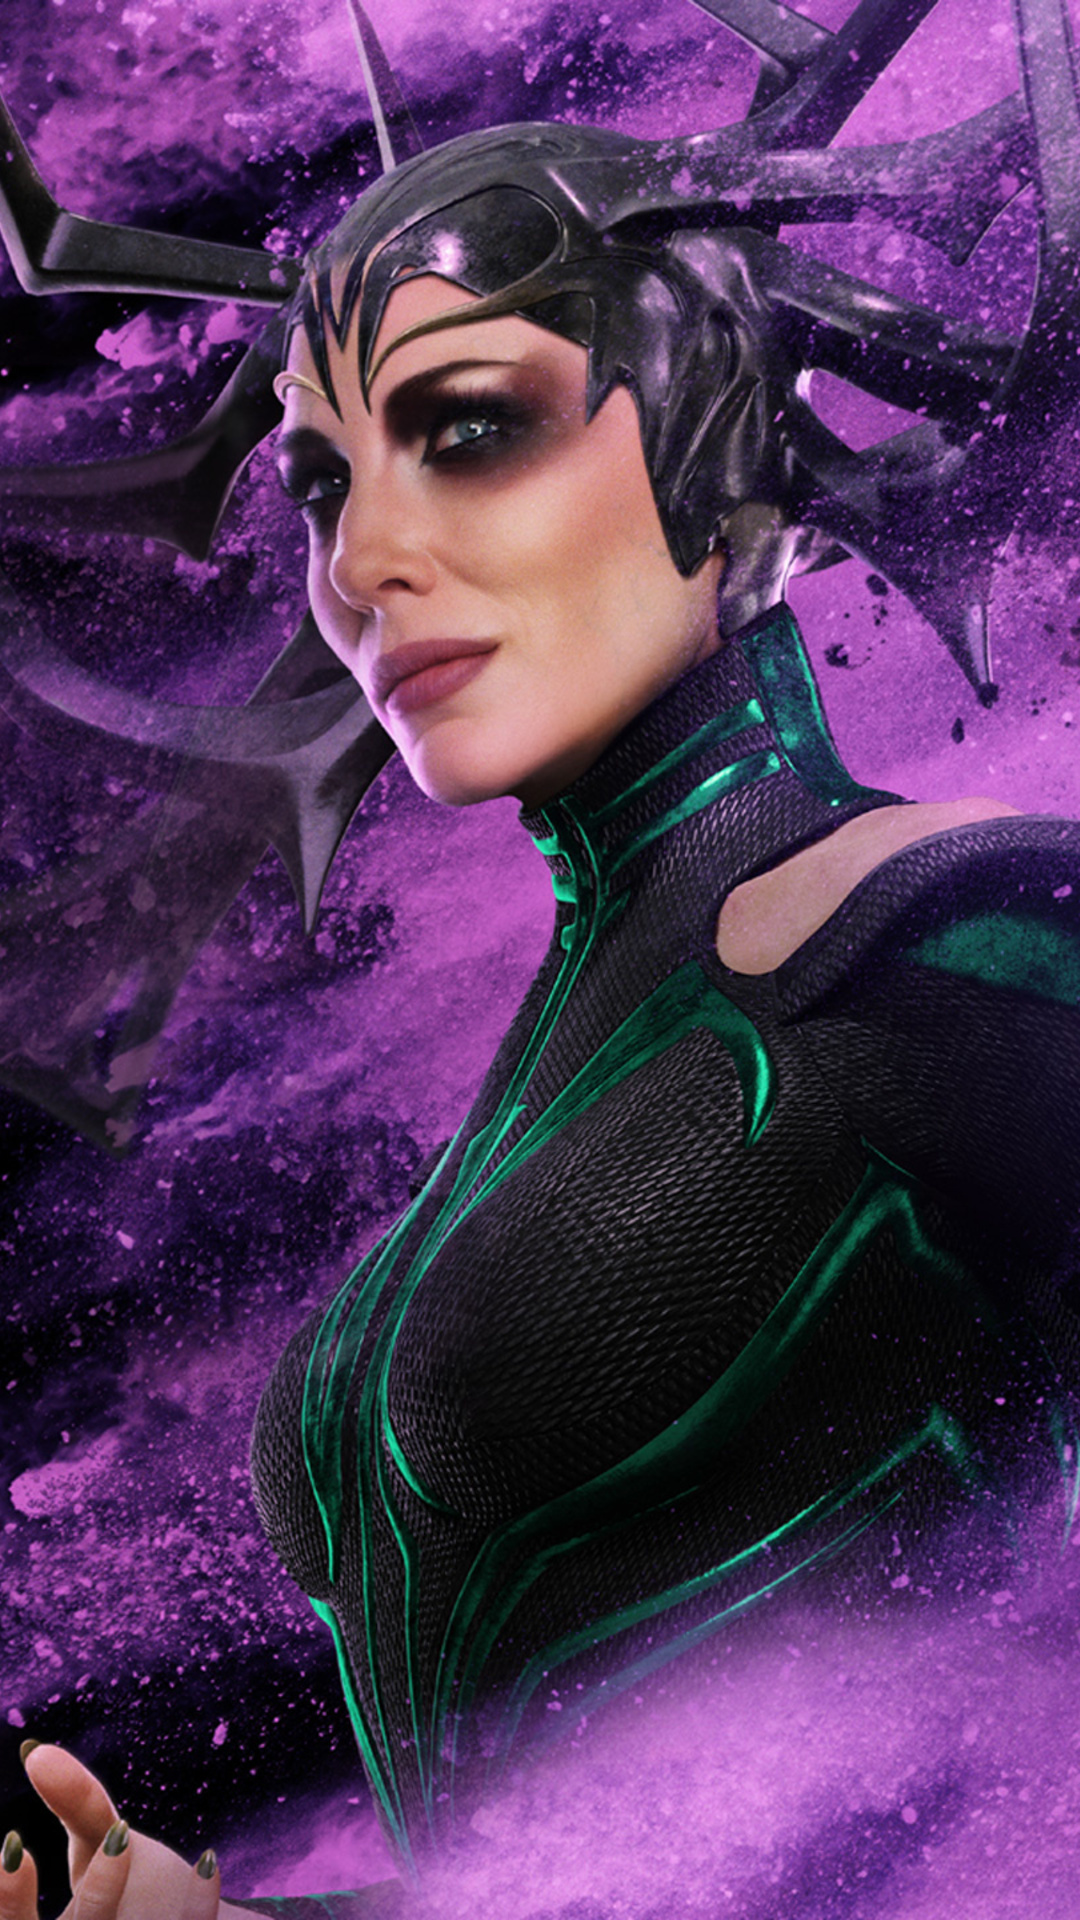 3d Wallpaper 800x1280 1080x1920 Thor Ragnarok Hela Iphone 7 6s 6 Plus Pixel Xl